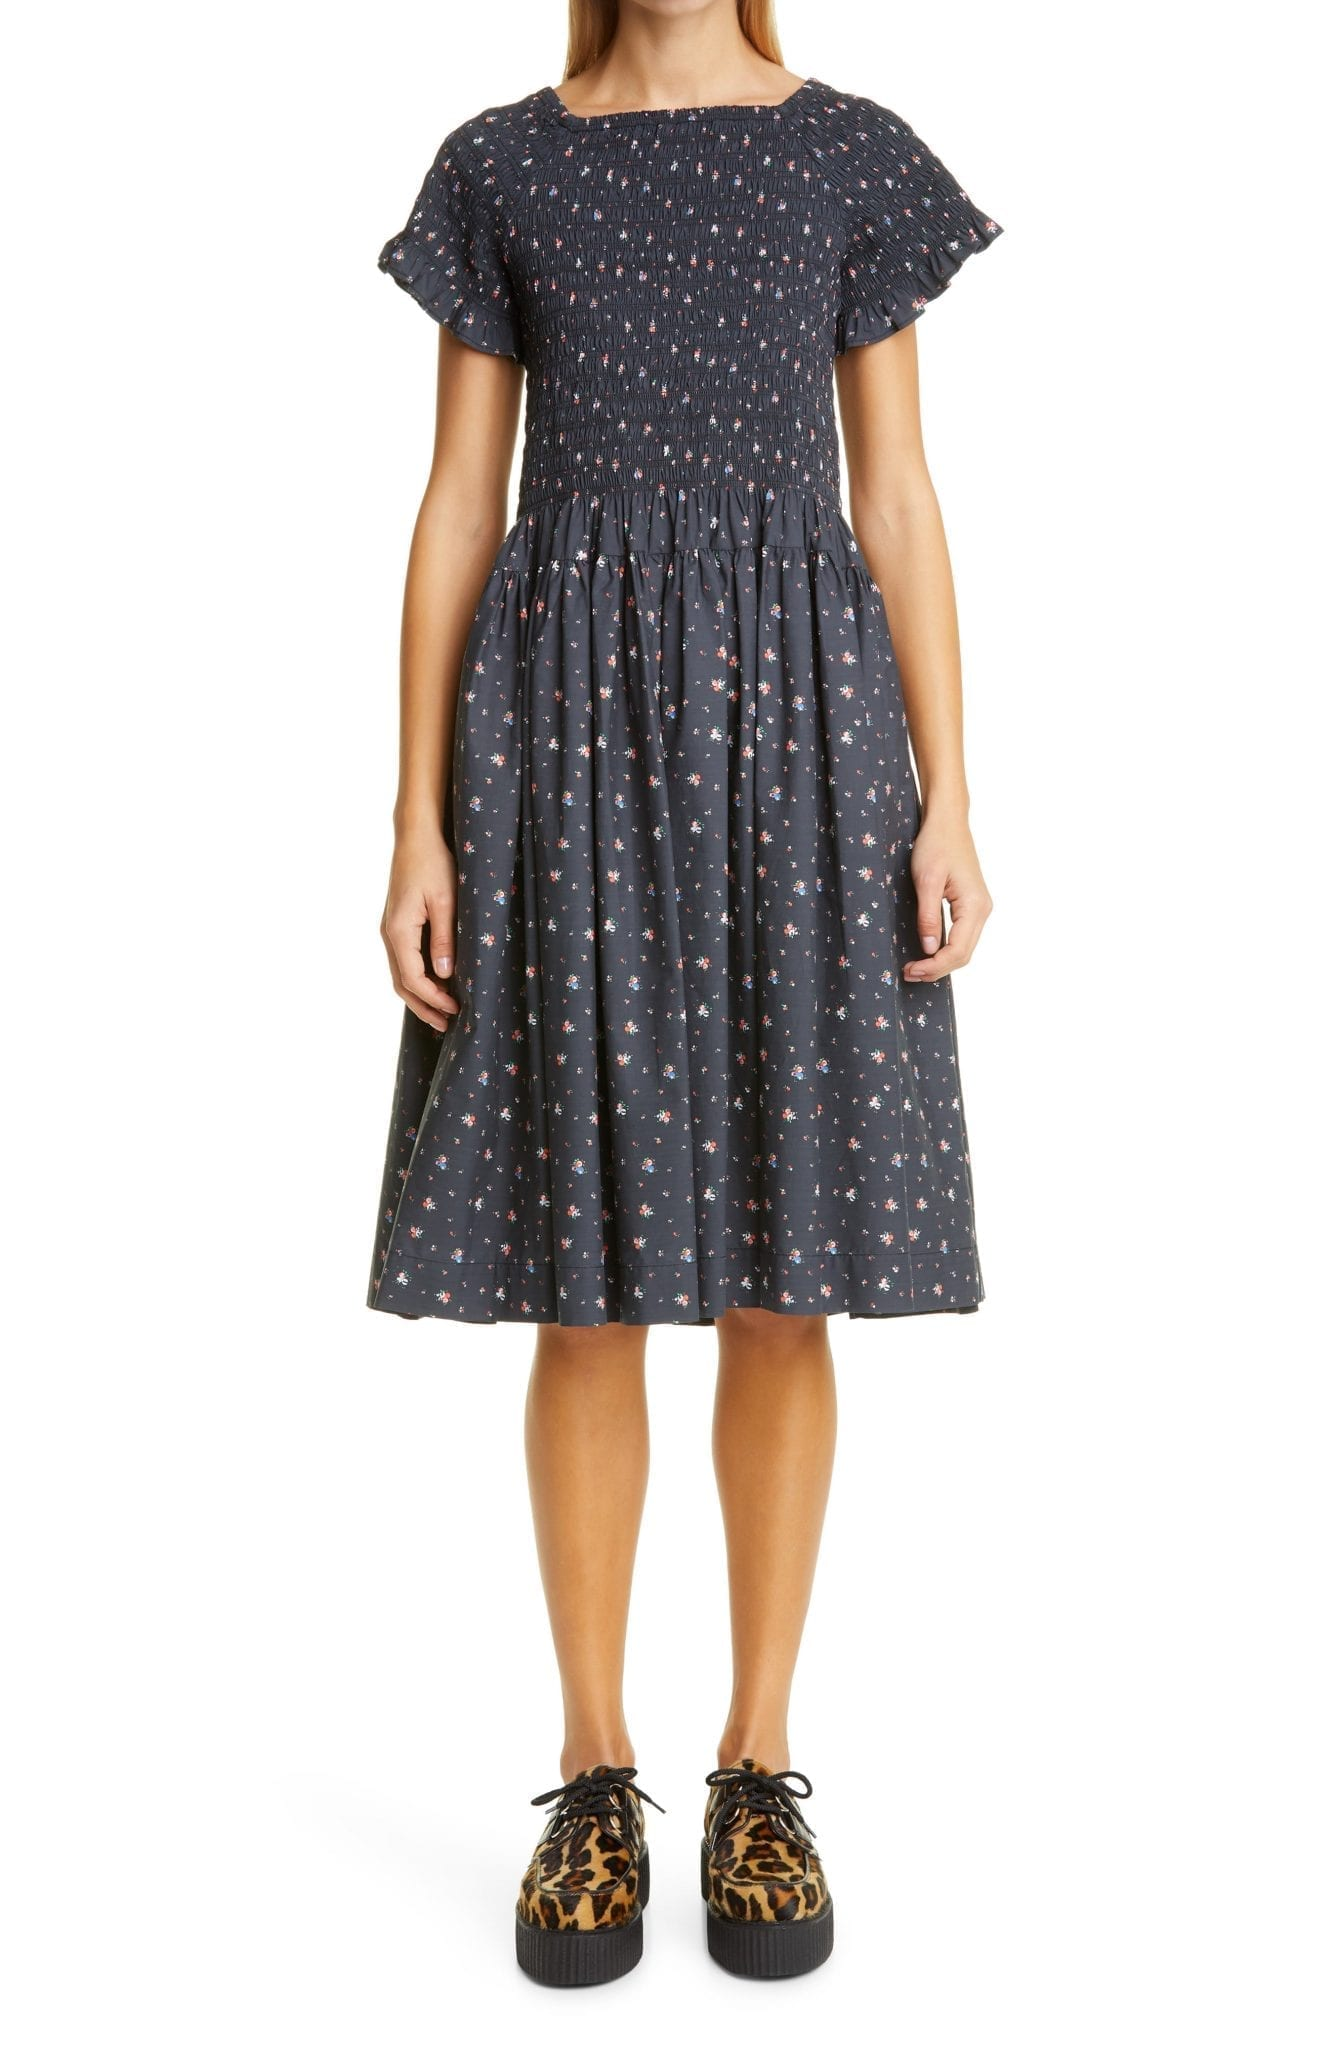 MOLLY GODDARD Tilly Floral Smocked Cotton Dress